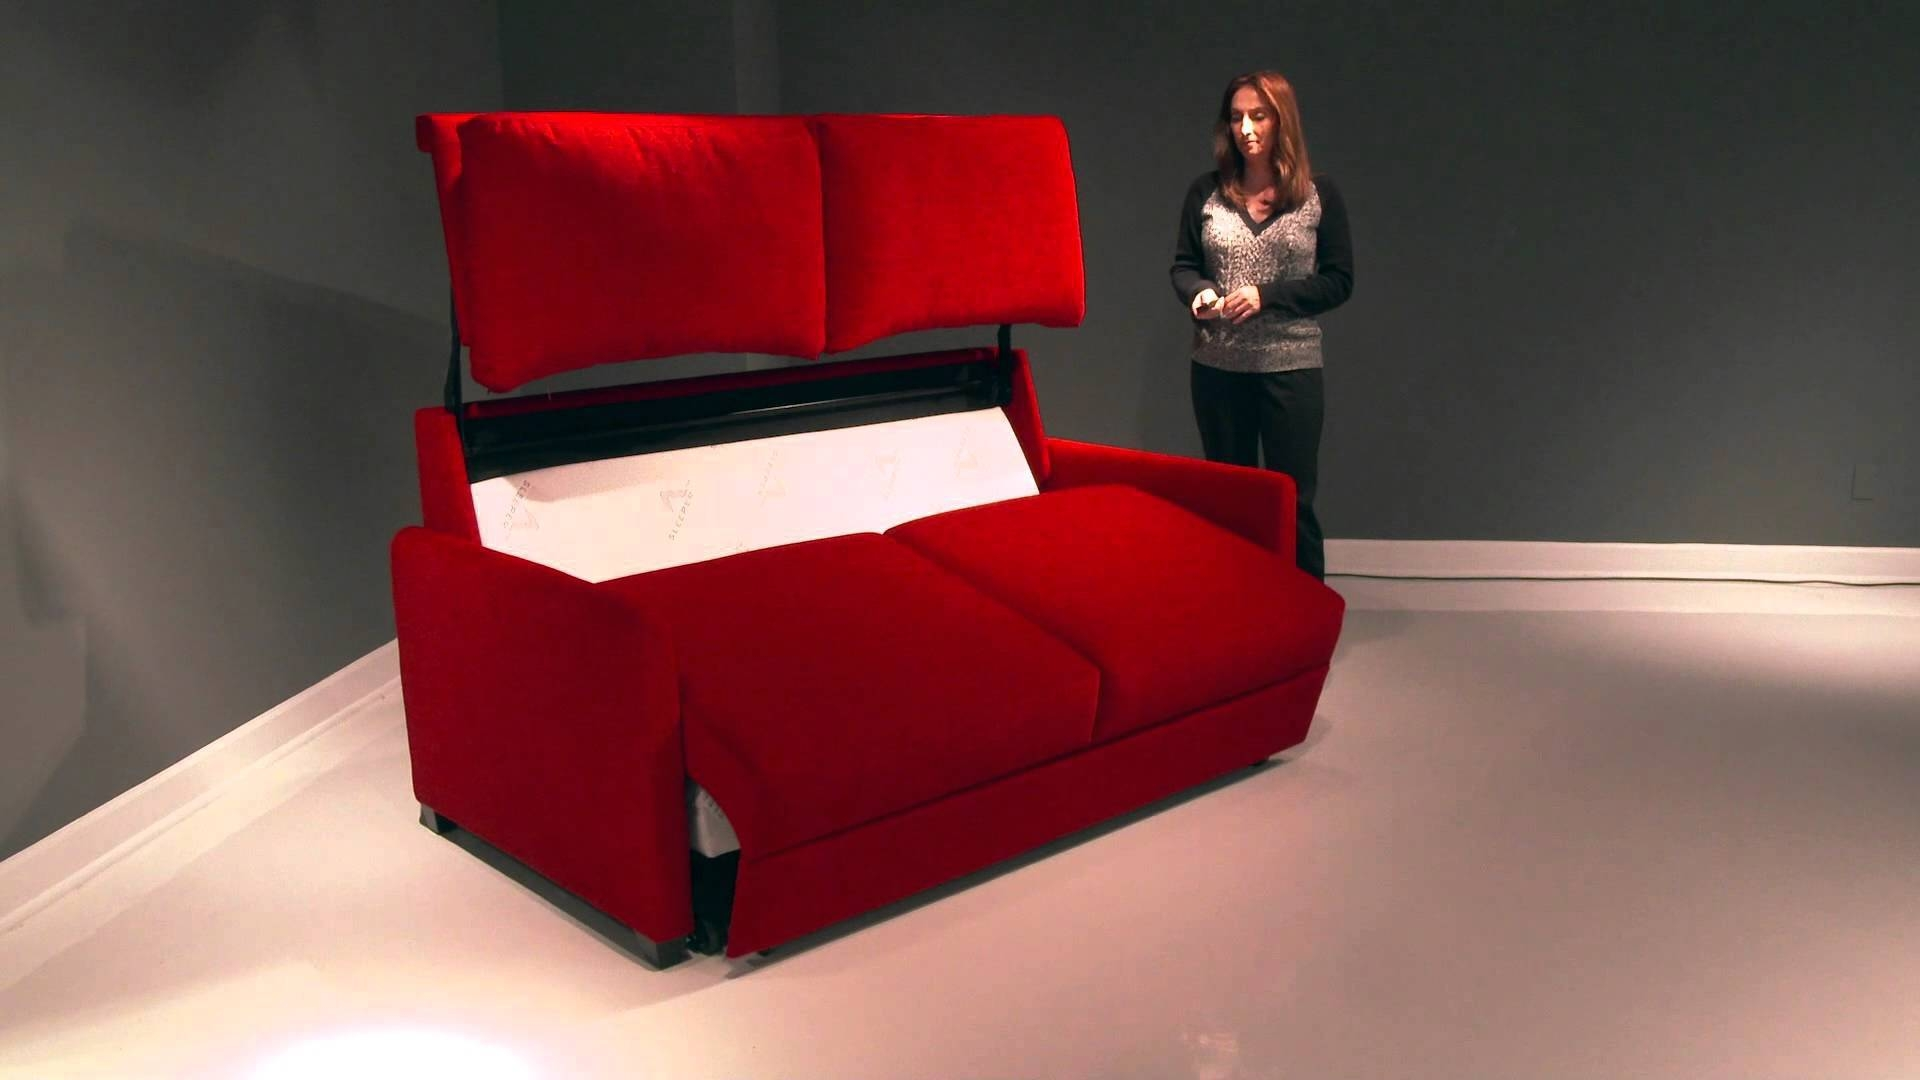 Paragon Power Sleeper Sofas San Diego - Youtube in Sofa Bed Sleepers (Image 12 of 30)